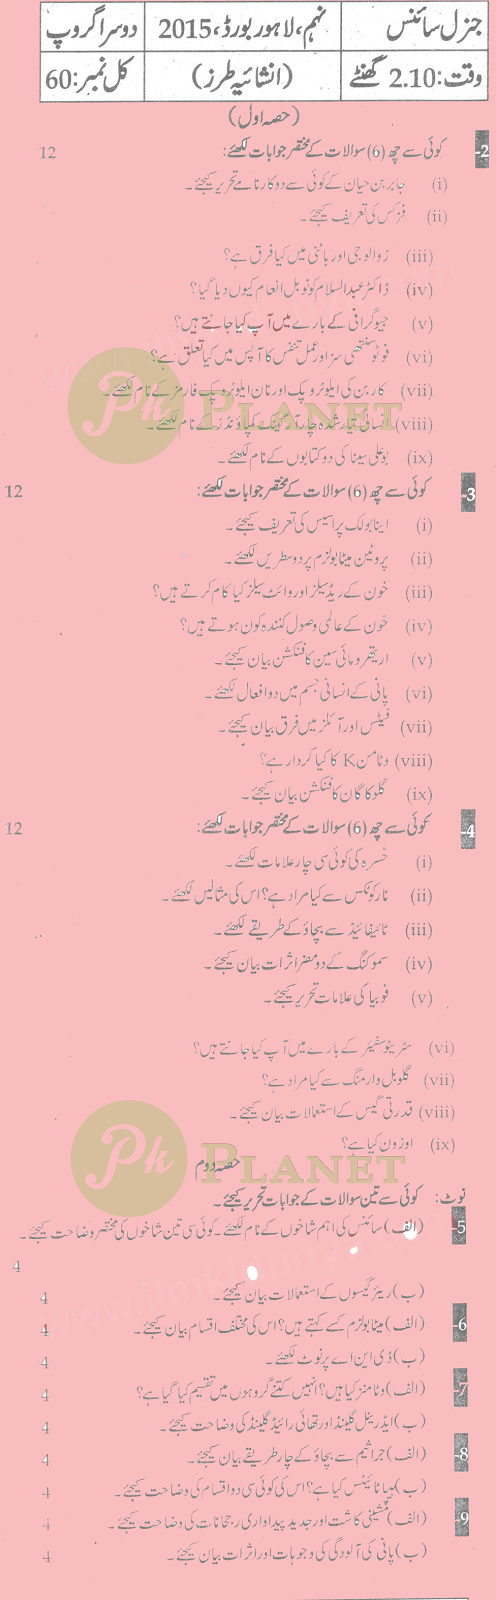 Past Papers of 9th Class Lahore Board 2015 General Science